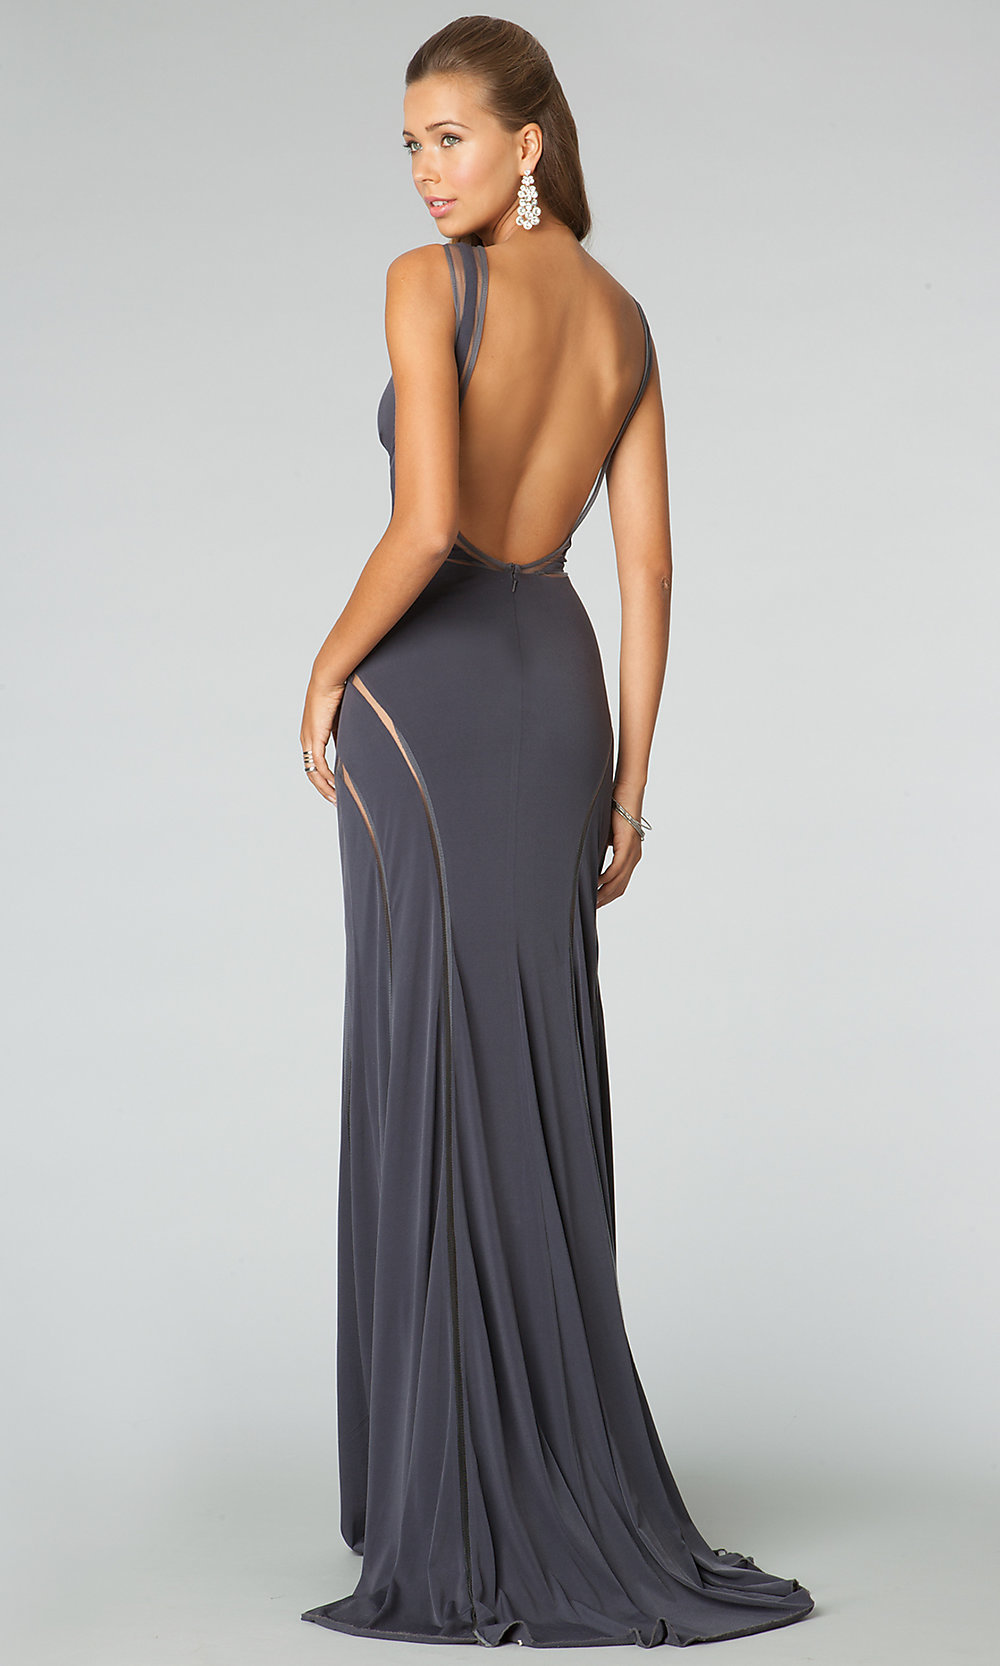 Long Sleeveless Formal Dresses Sexy Prom Evening Gowns Promgirl